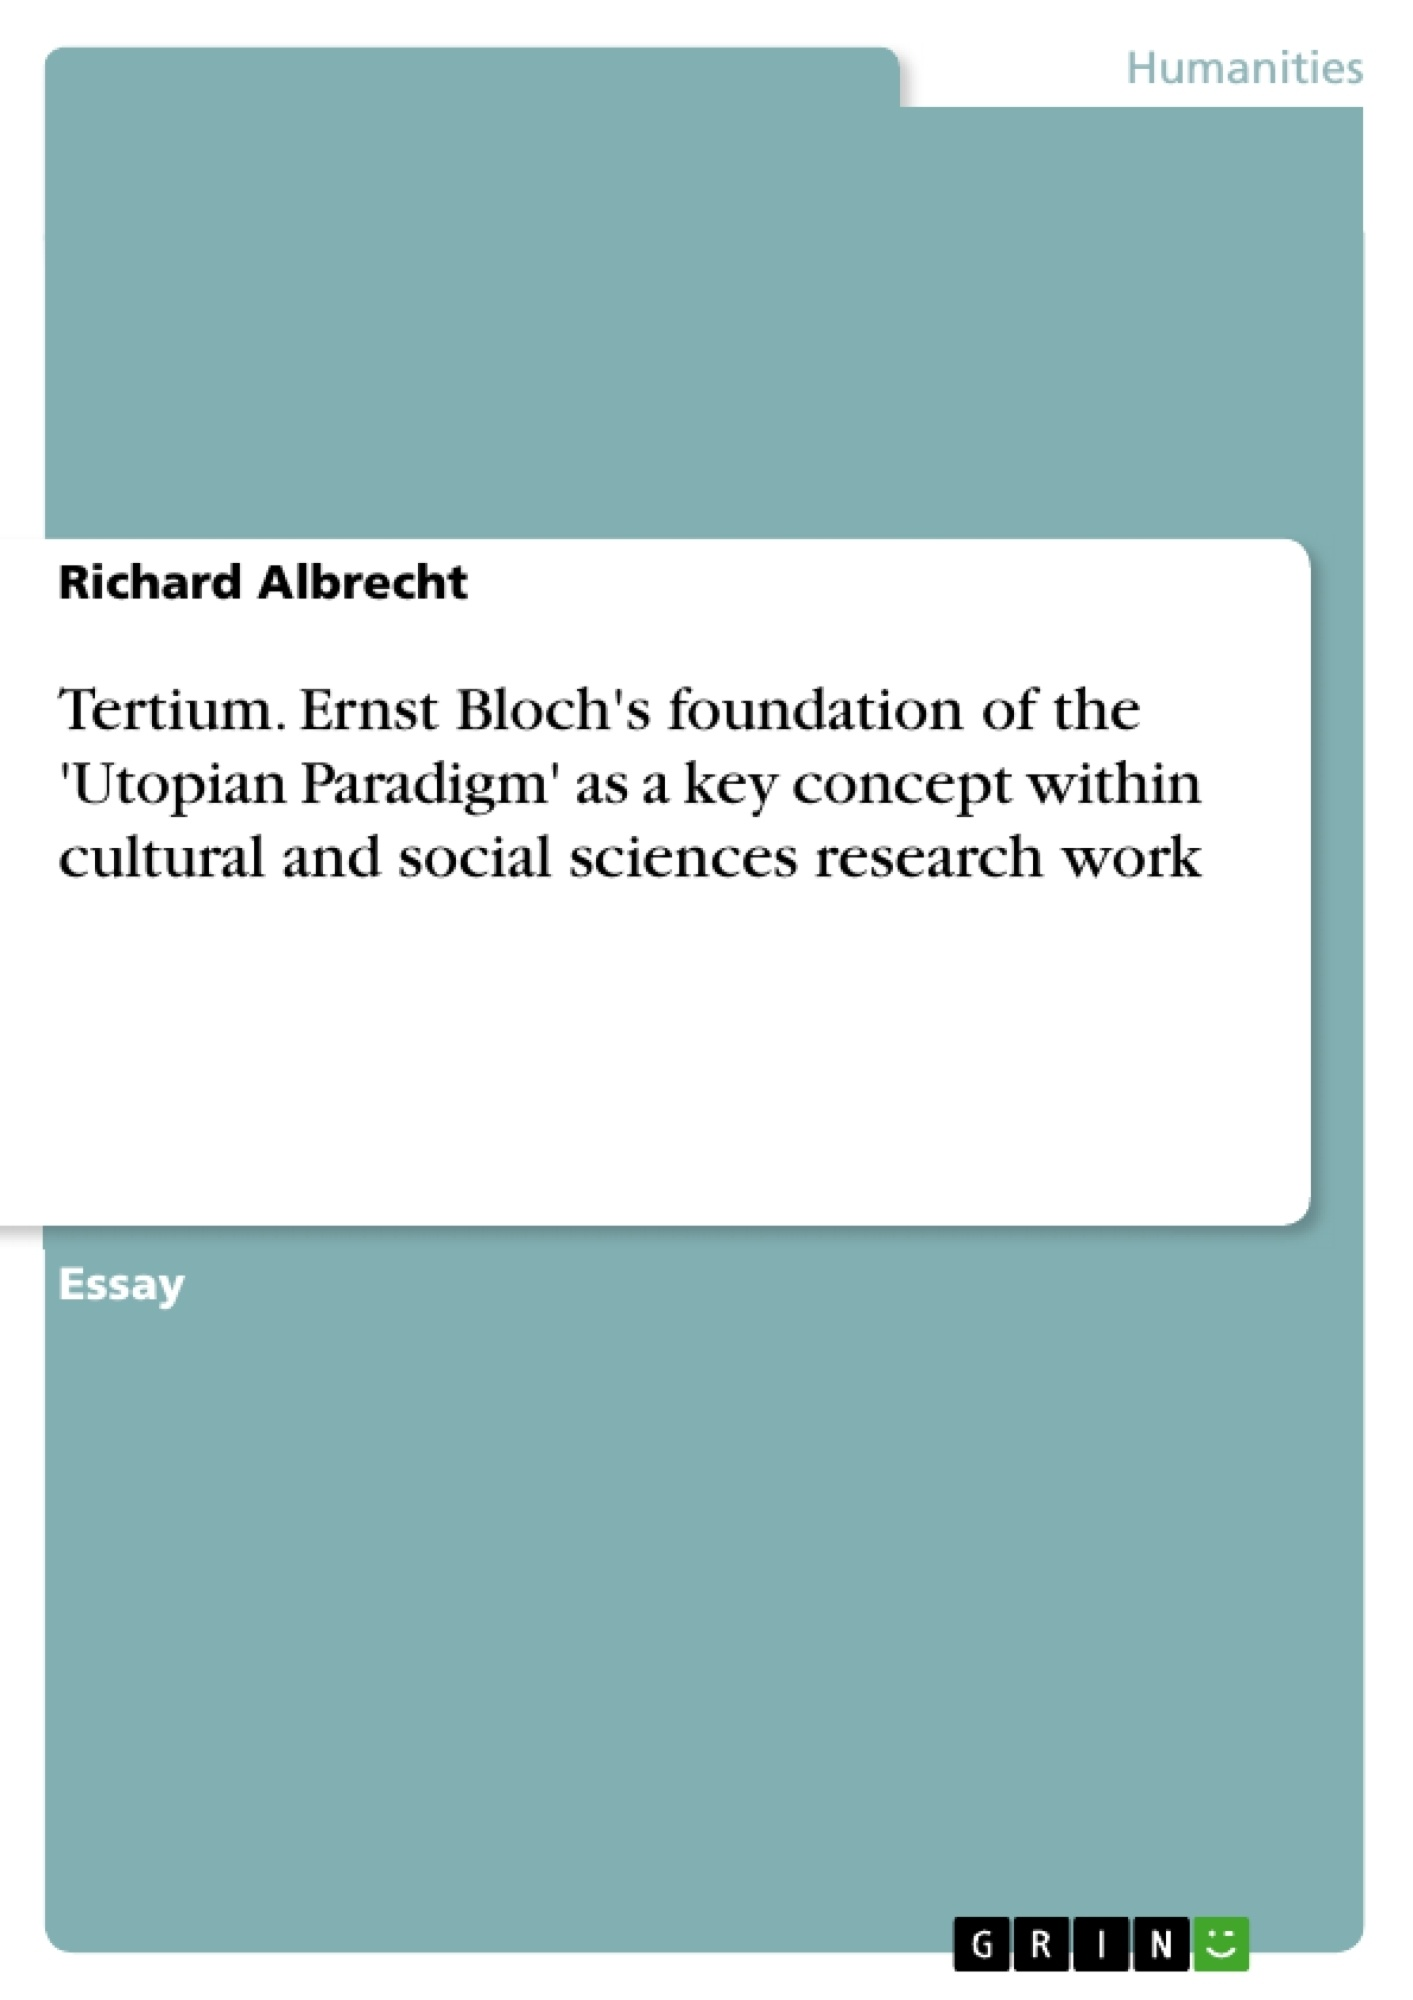 Title: Tertium. Ernst Bloch's foundation of the 'Utopian Paradigm' as a key concept within cultural and social sciences research work